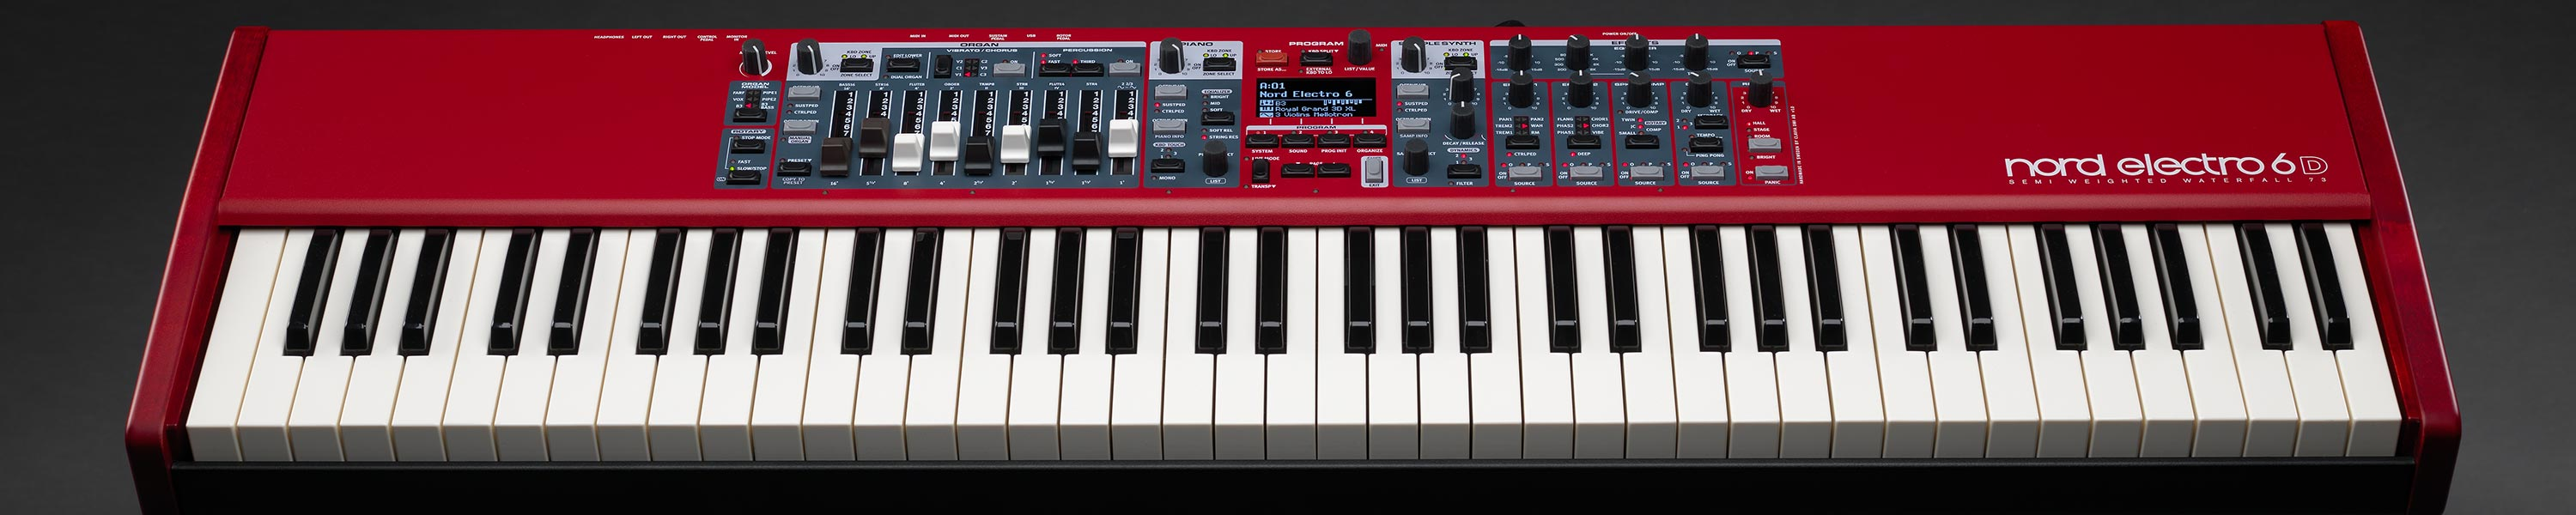 Clavia Nord Electro 6D 73 Front Angled Performance